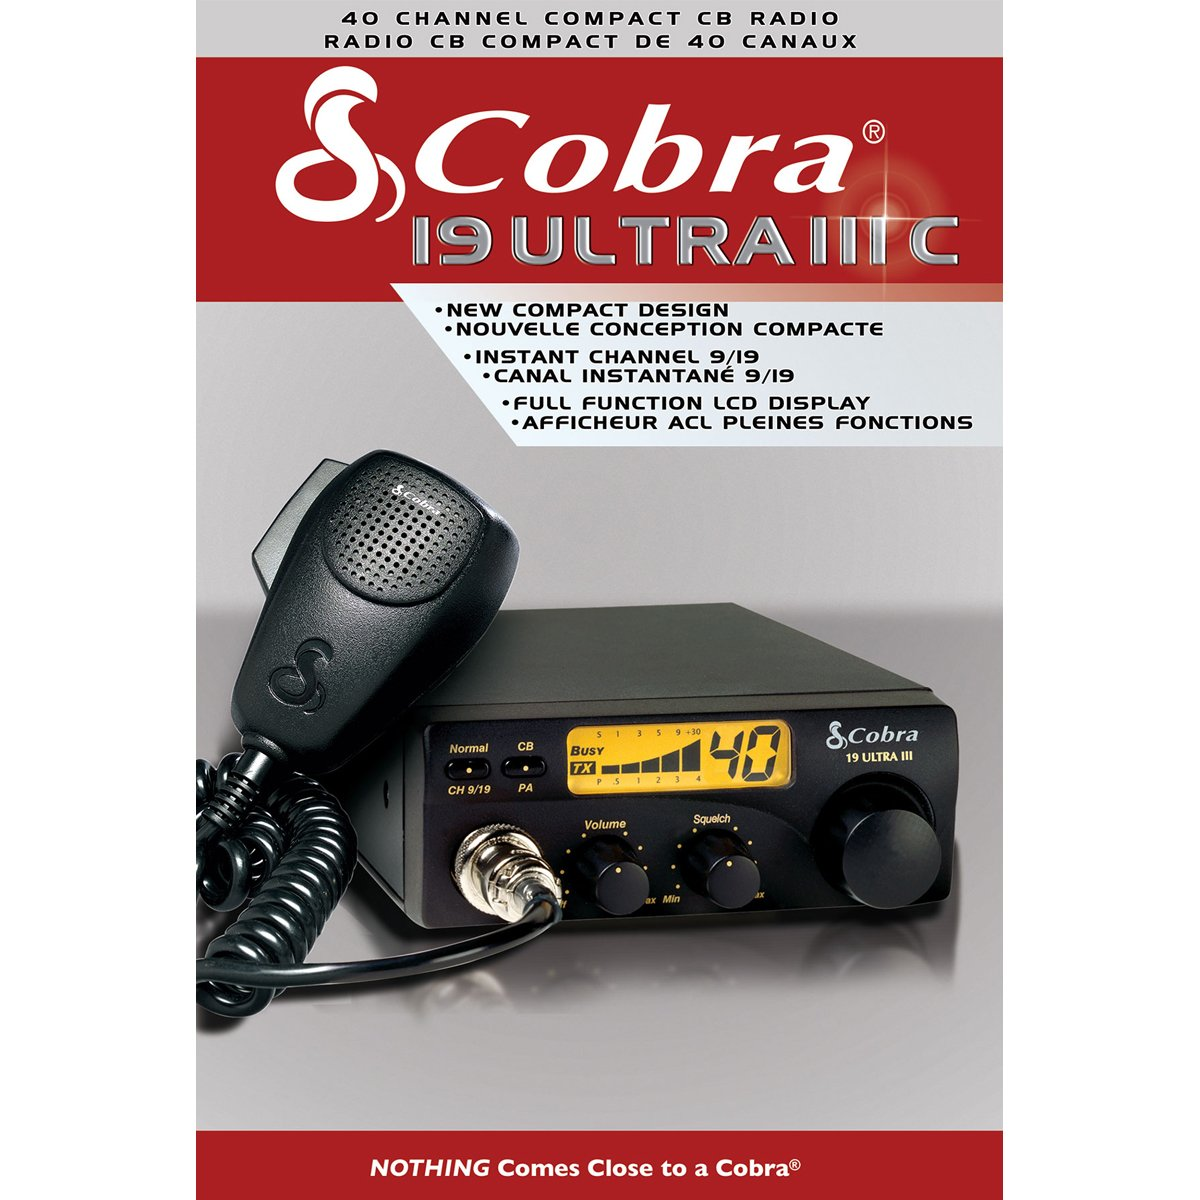 Cobra 19ULTRAIII 40 Channel Compact CB Radio with Illuminated Display Canadian Compliant